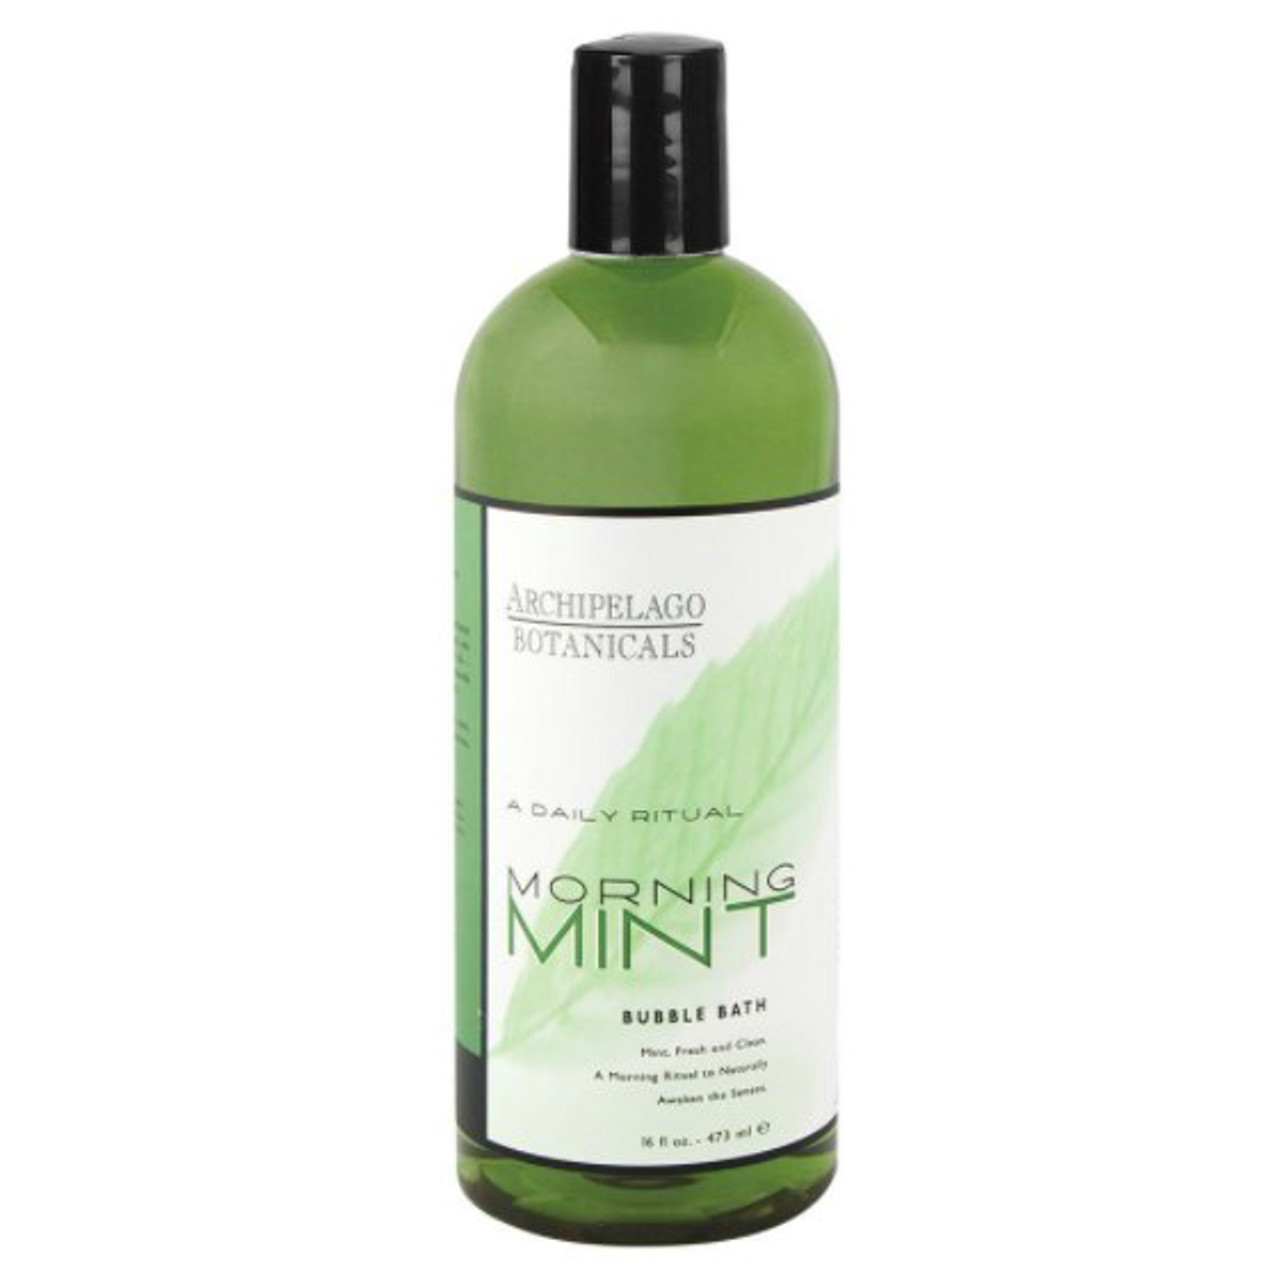 Archipelago Morning Mint Bubble Bath 16 oz